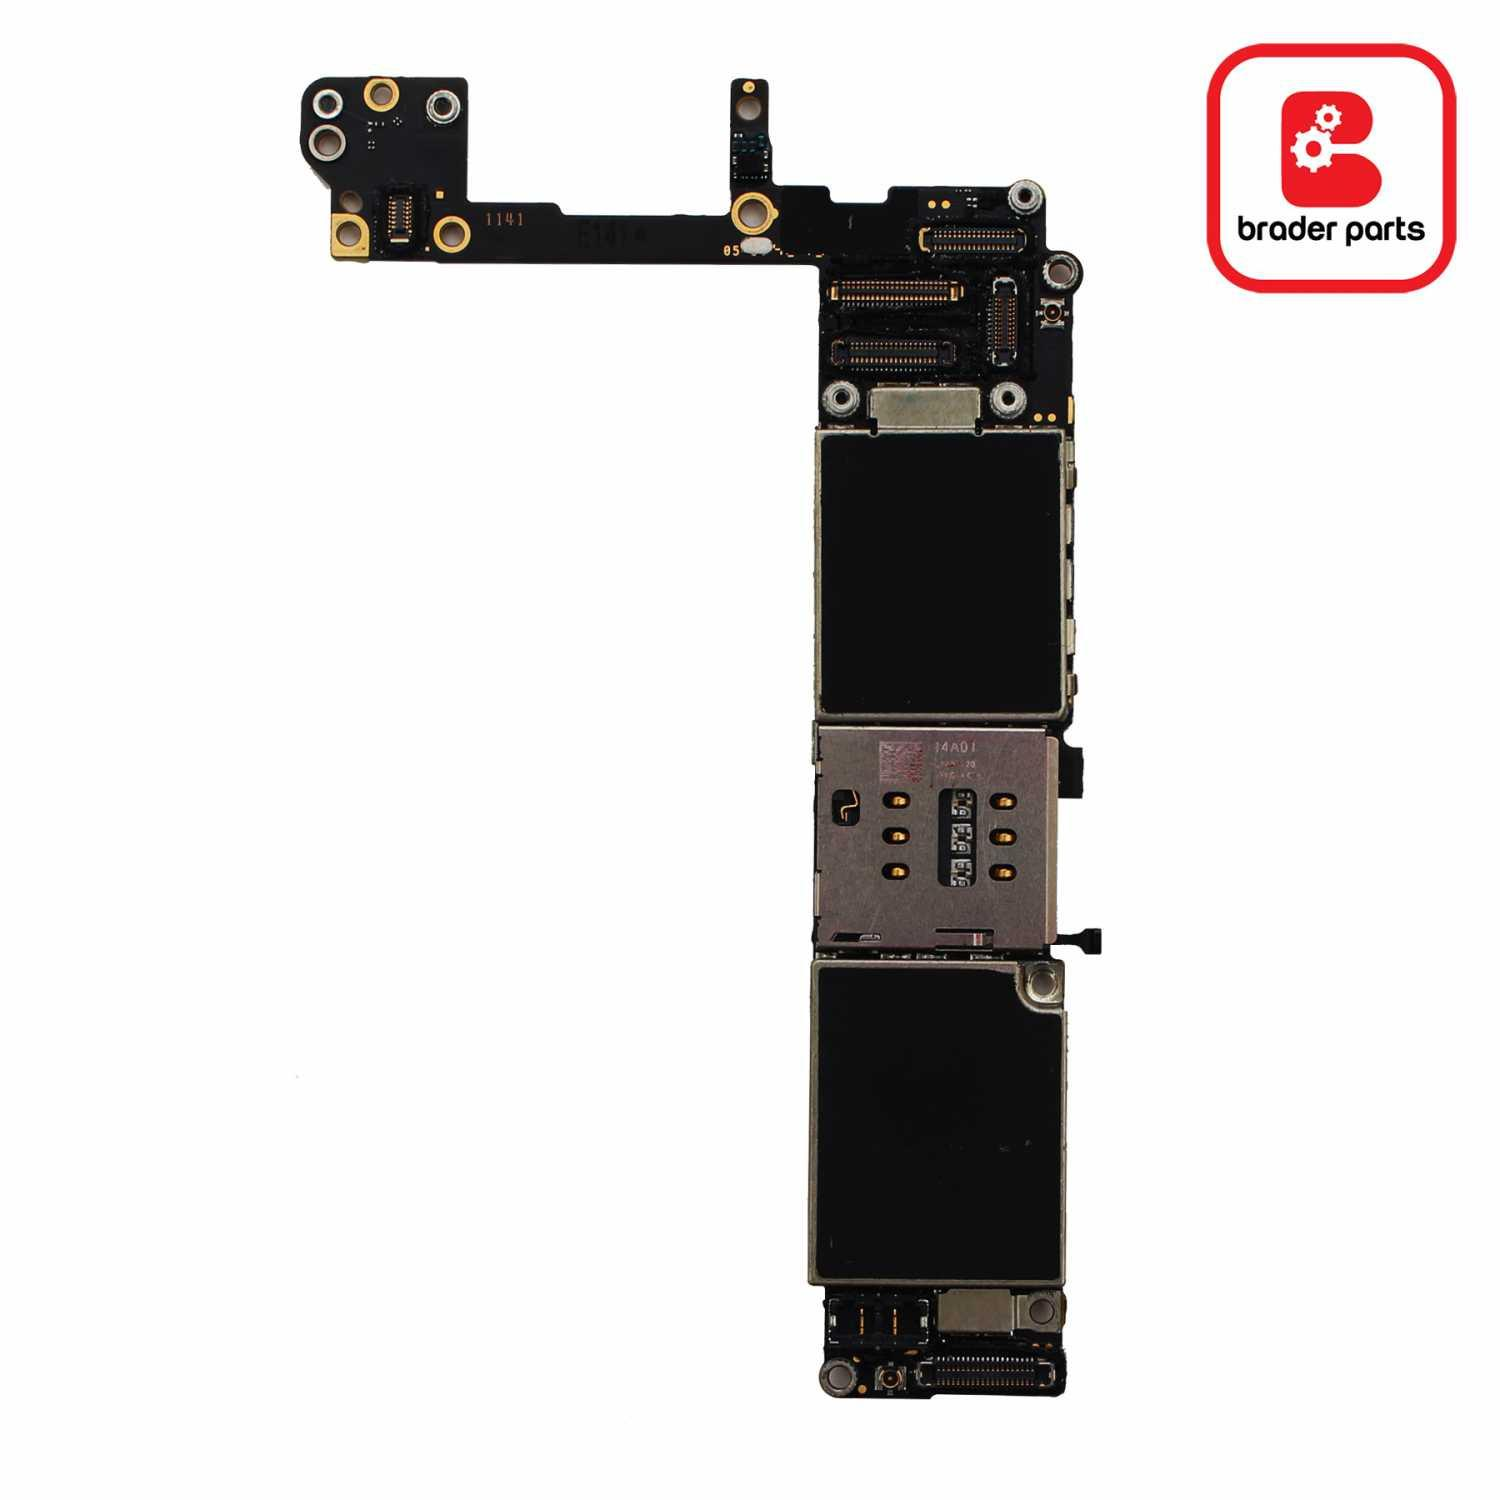 MAINBOARD NORMAL IPHONE 6 PLUS 128GB NON FINGERPRINT | HP